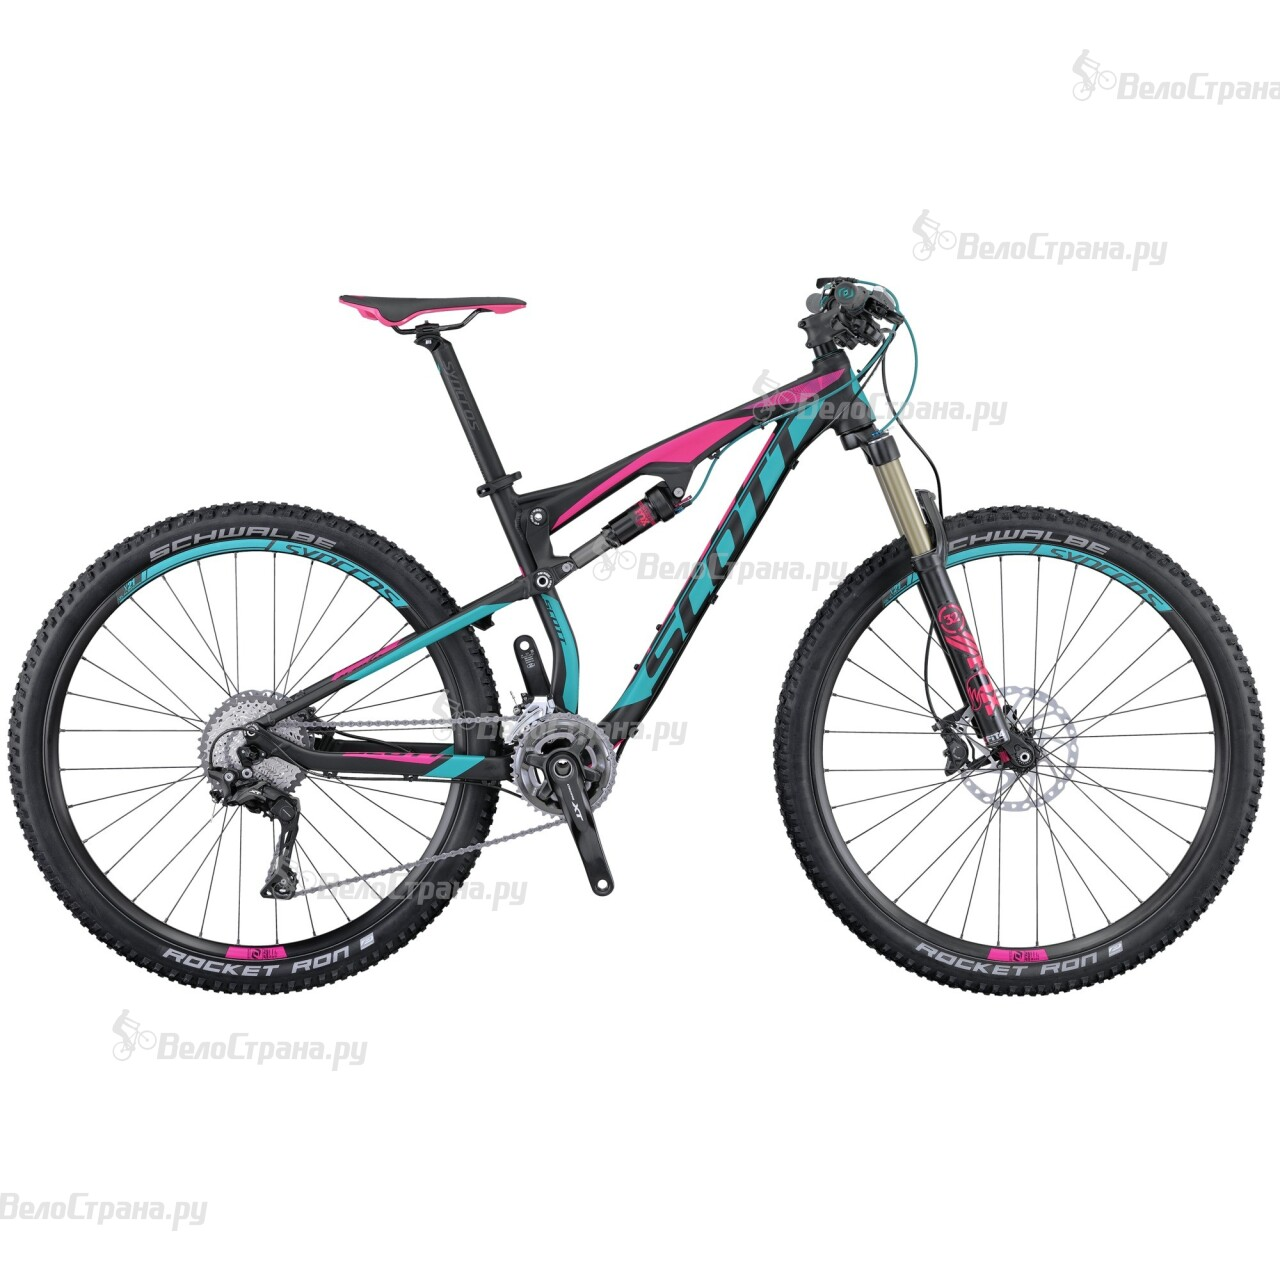 Велосипед Scott Contessa Spark 700 (2016)  велосипед scott contessa genius 700 2015